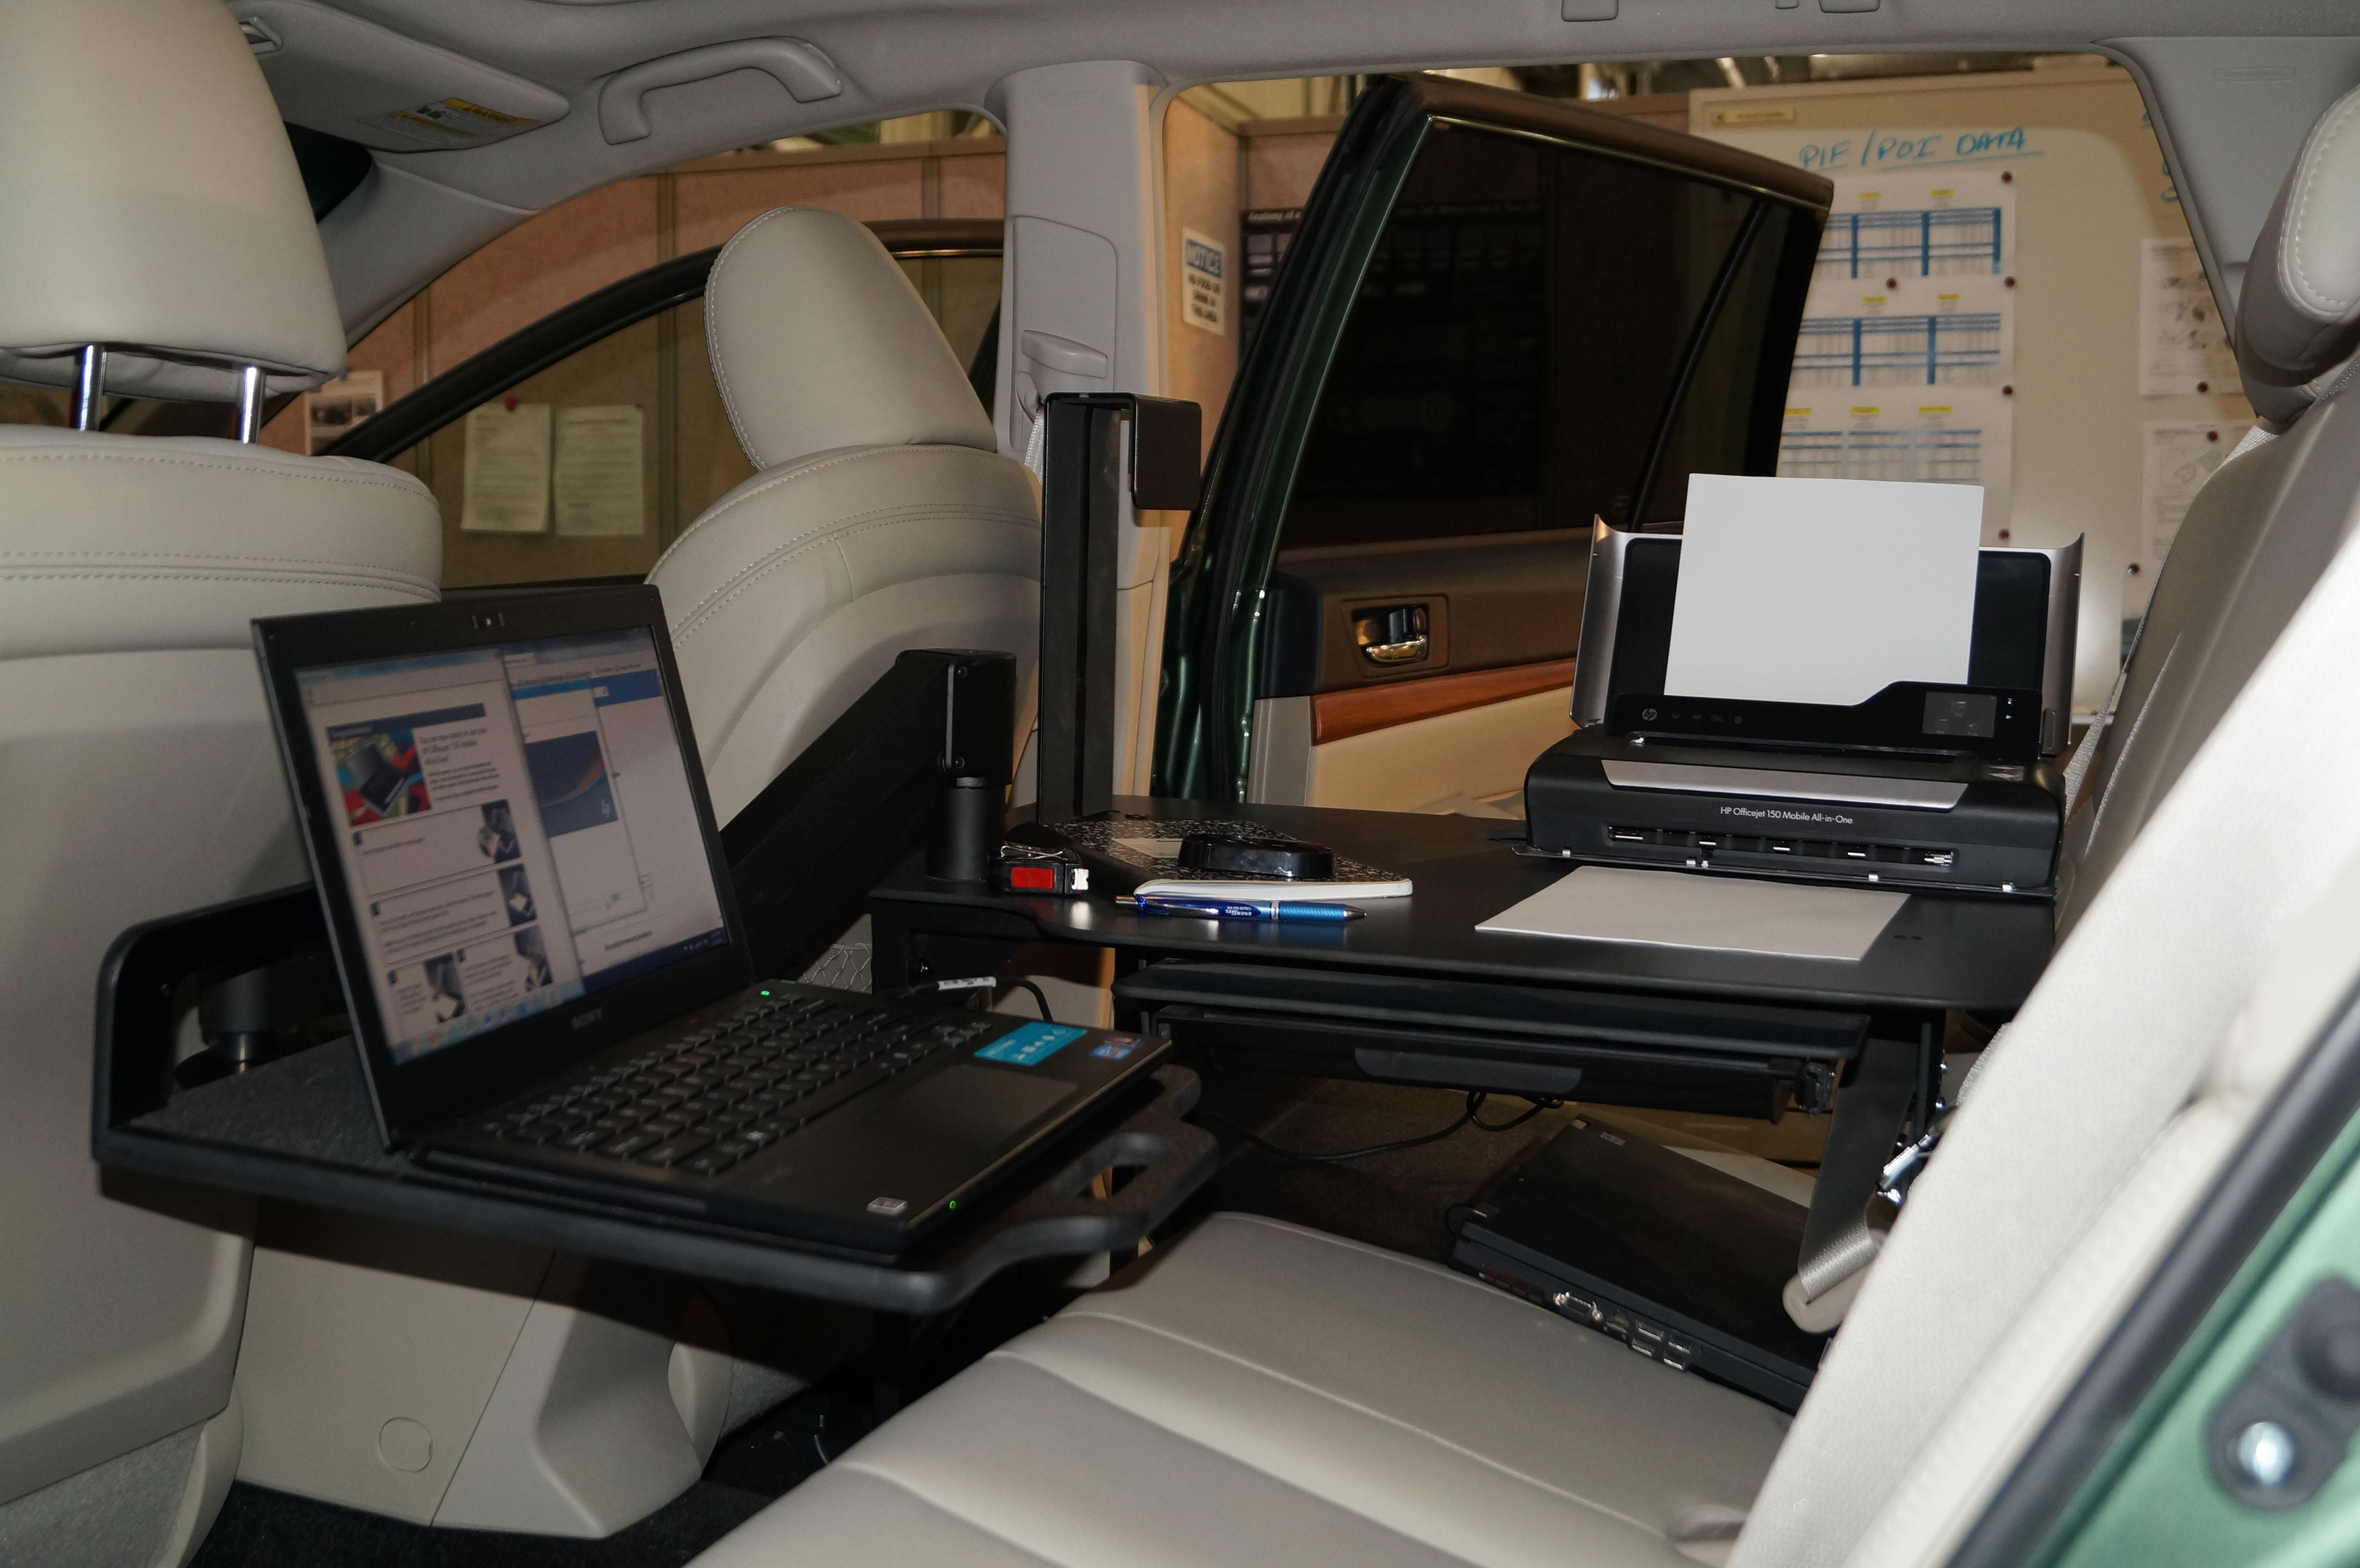 Universal Car Desk Equipped With A Laptop And Printer To